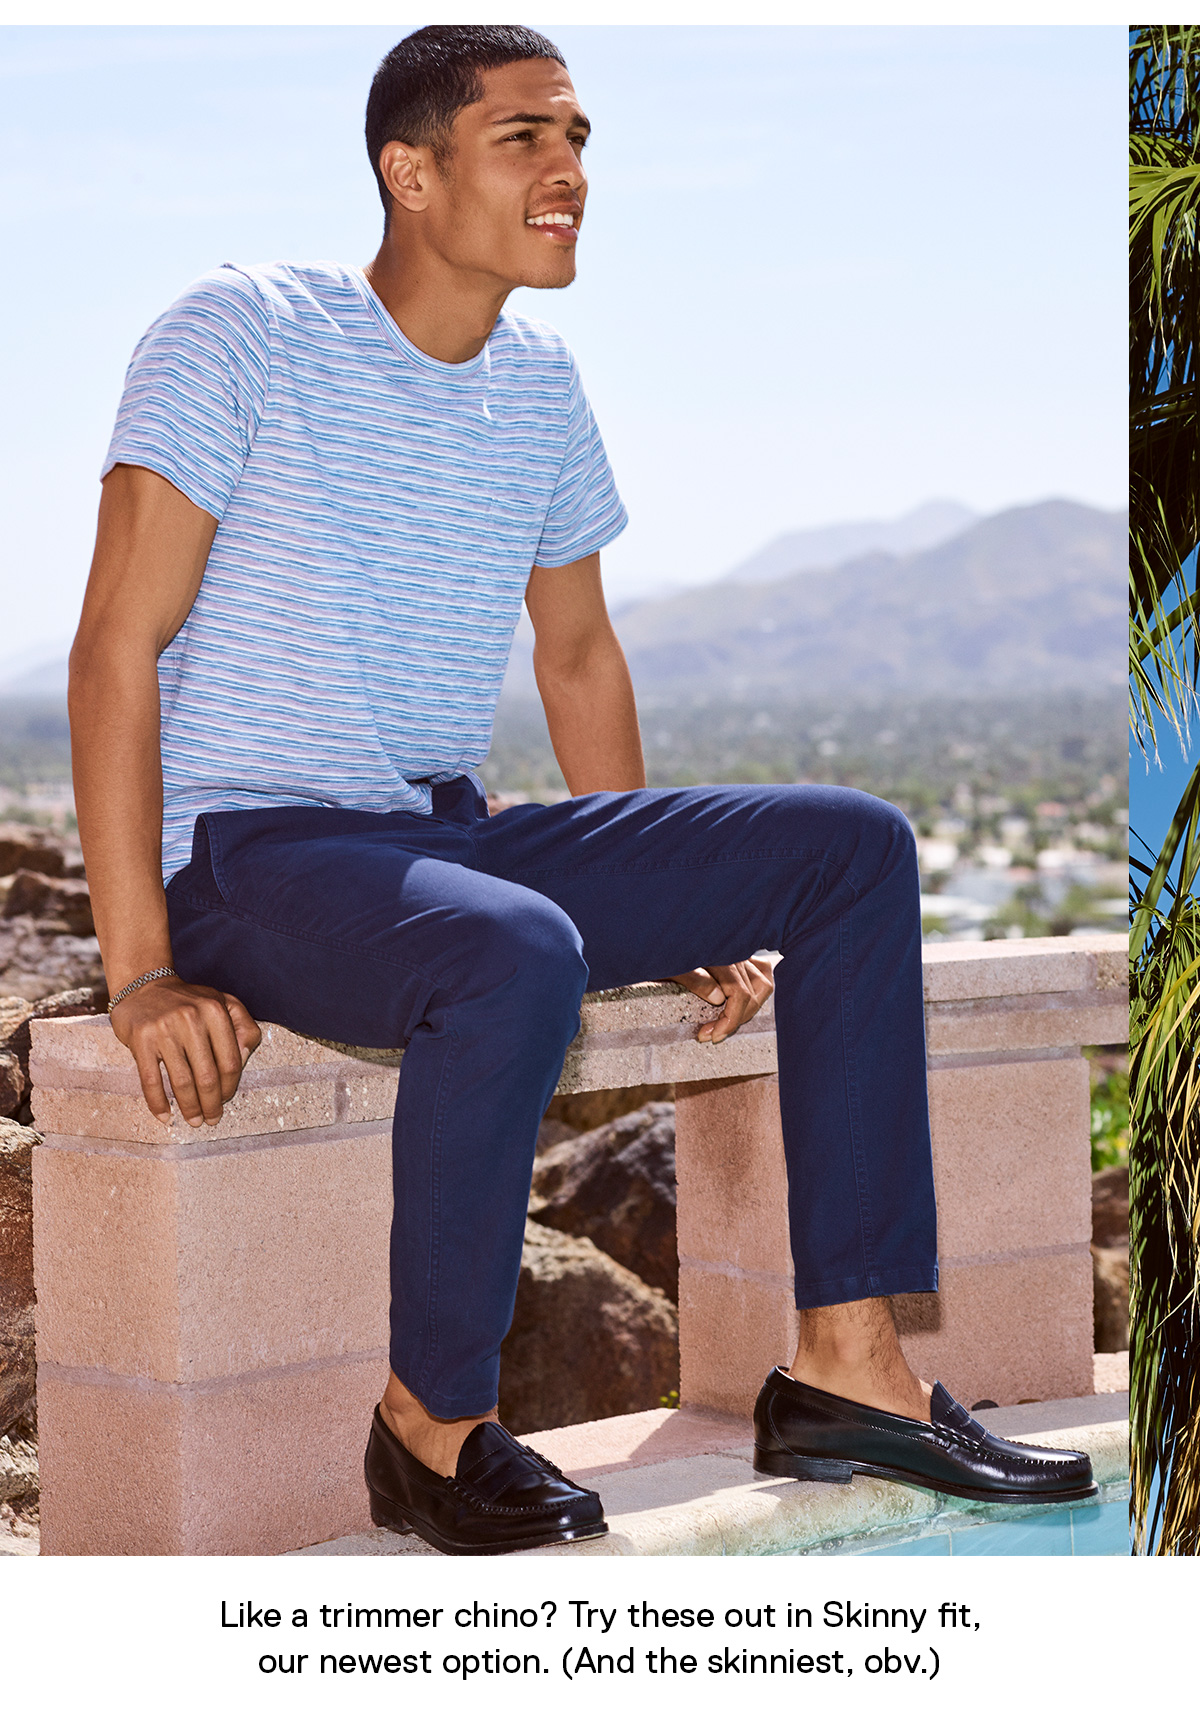 Like a trimmer chino? Try these out in Skinny fit, our newest option. (And the skinniest, obv.)